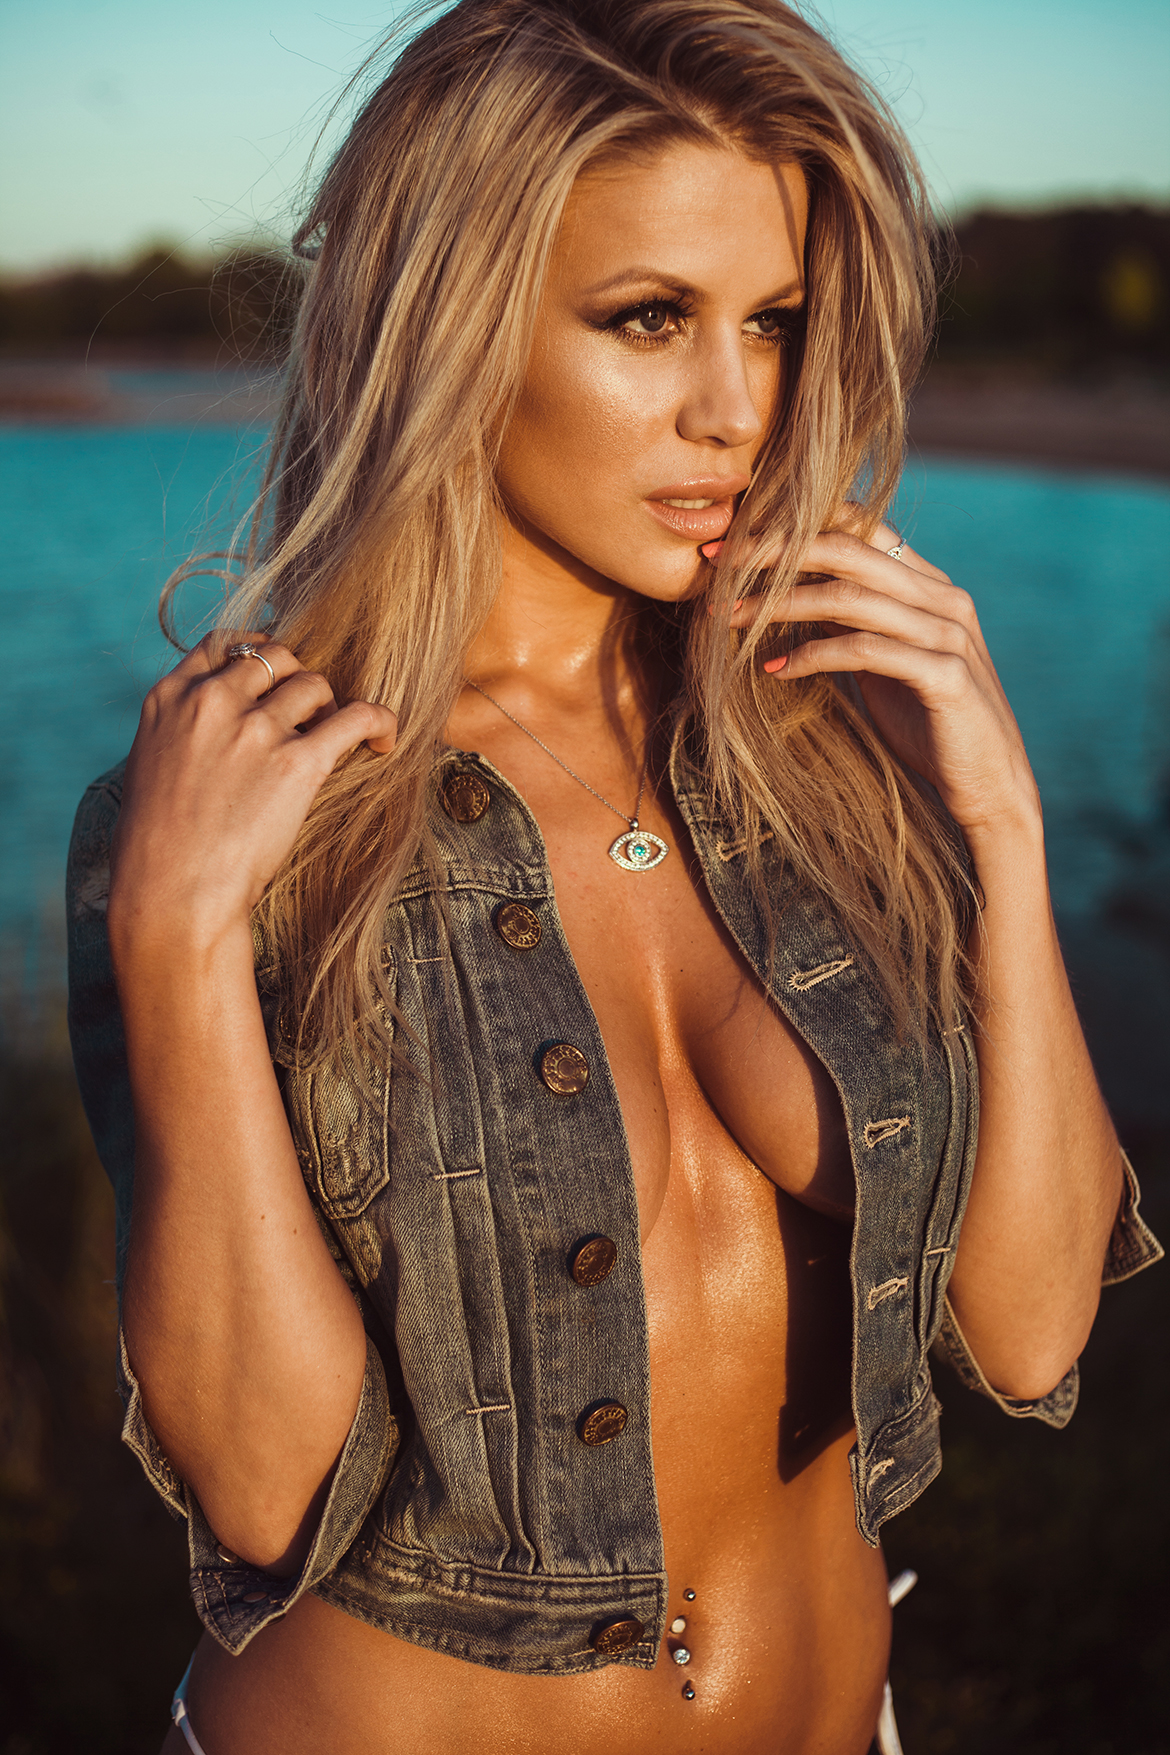 Get Your Feet Wet Featuring Madison Welch